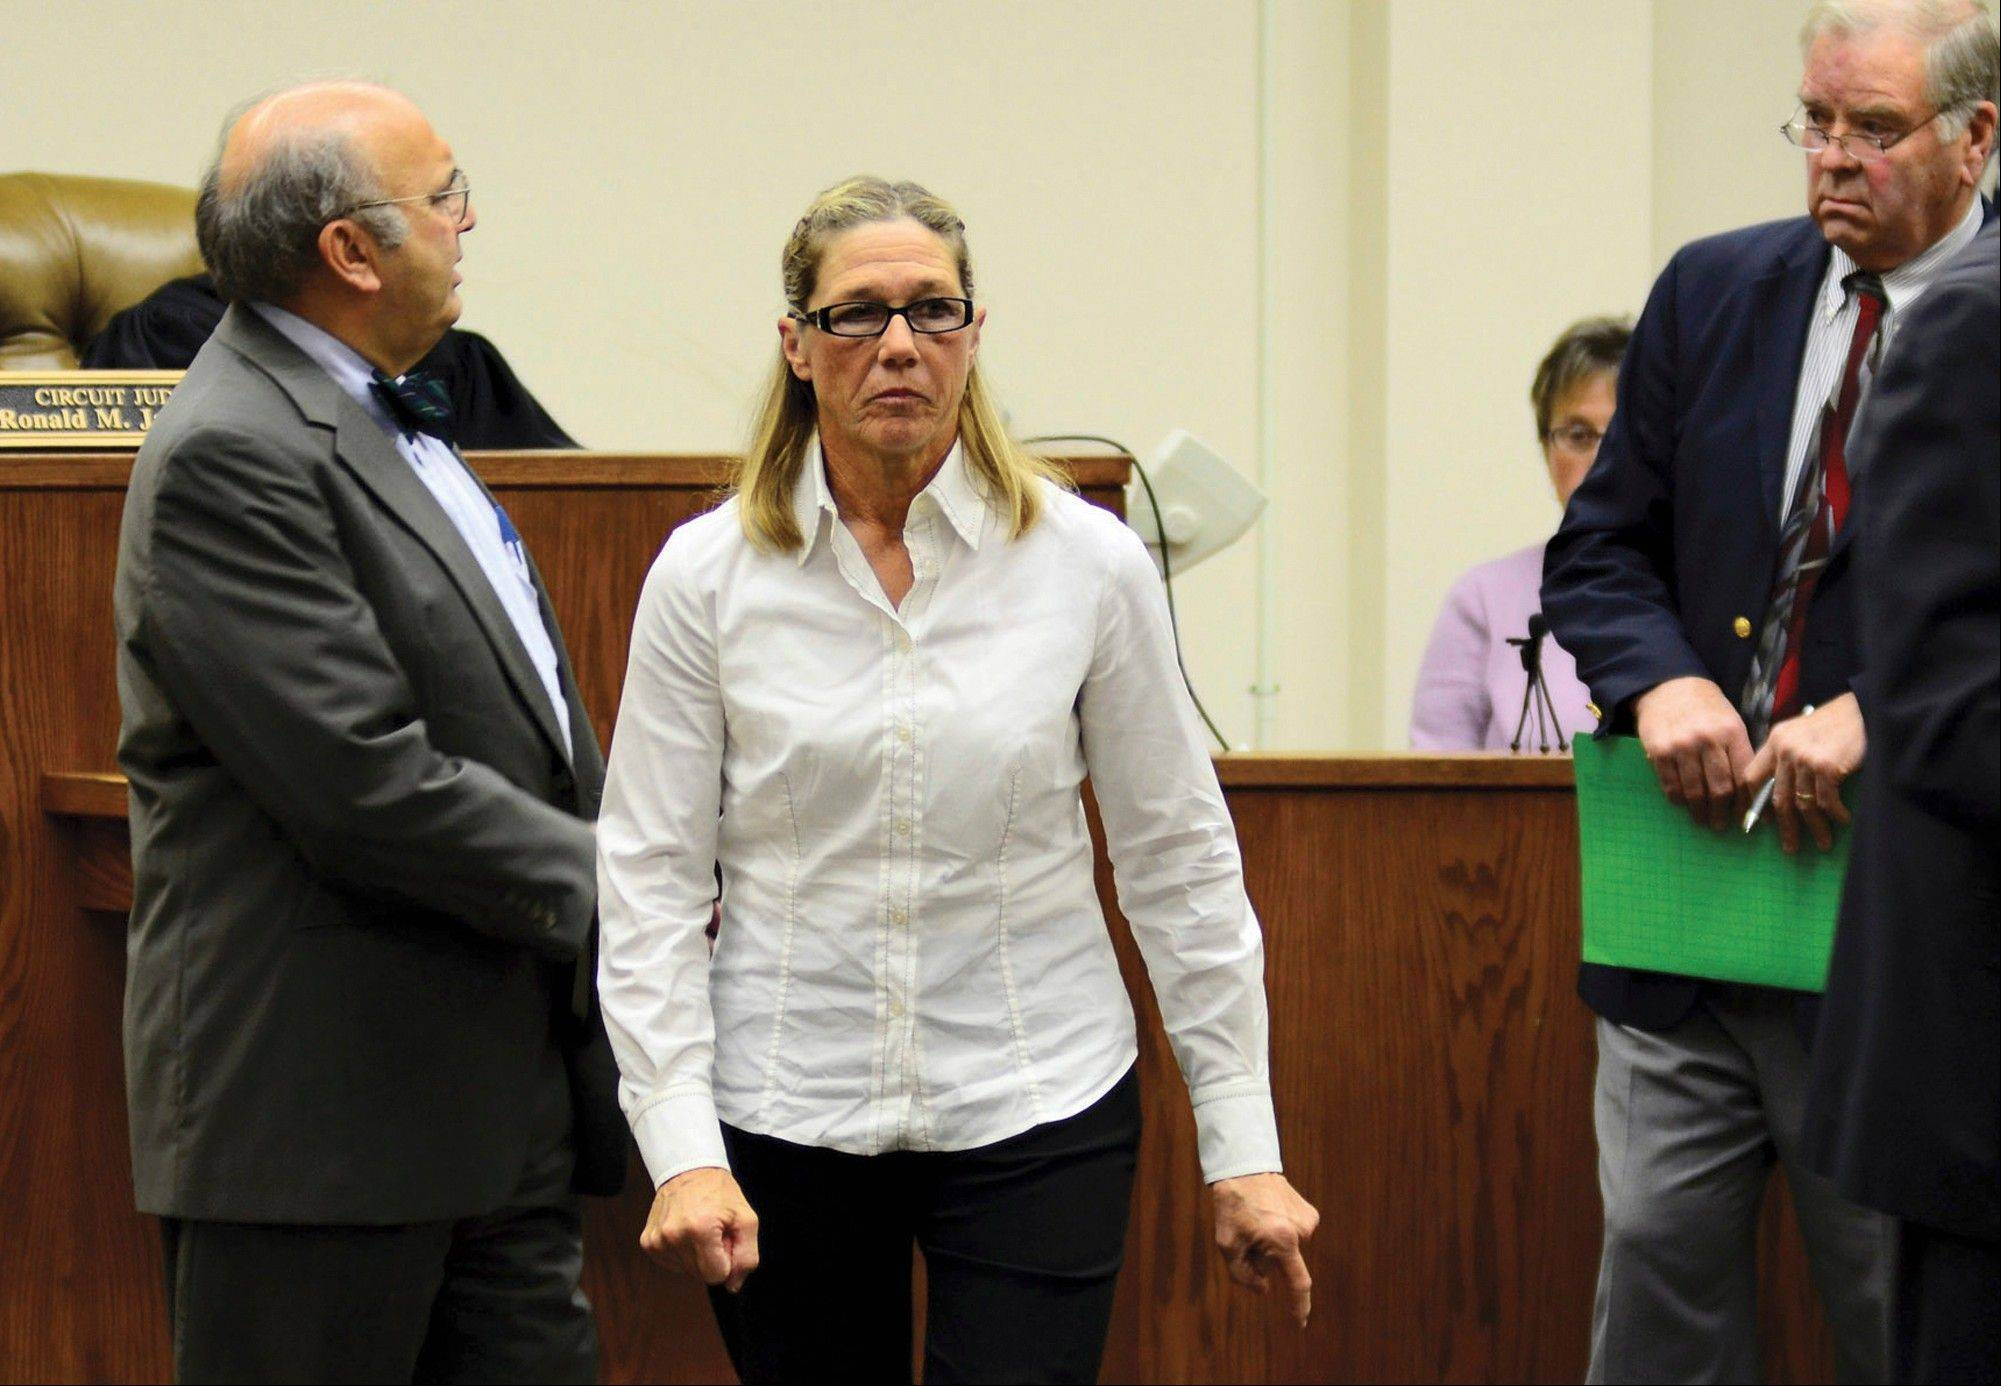 Rita Crundwell, former comptroller of Dixon, pleaded guilty Wednesday to allegations she embezzled more than $50 million from a small city in Illinois to fund a lavish lifestyle that included a nationally known horse-breeding operation.